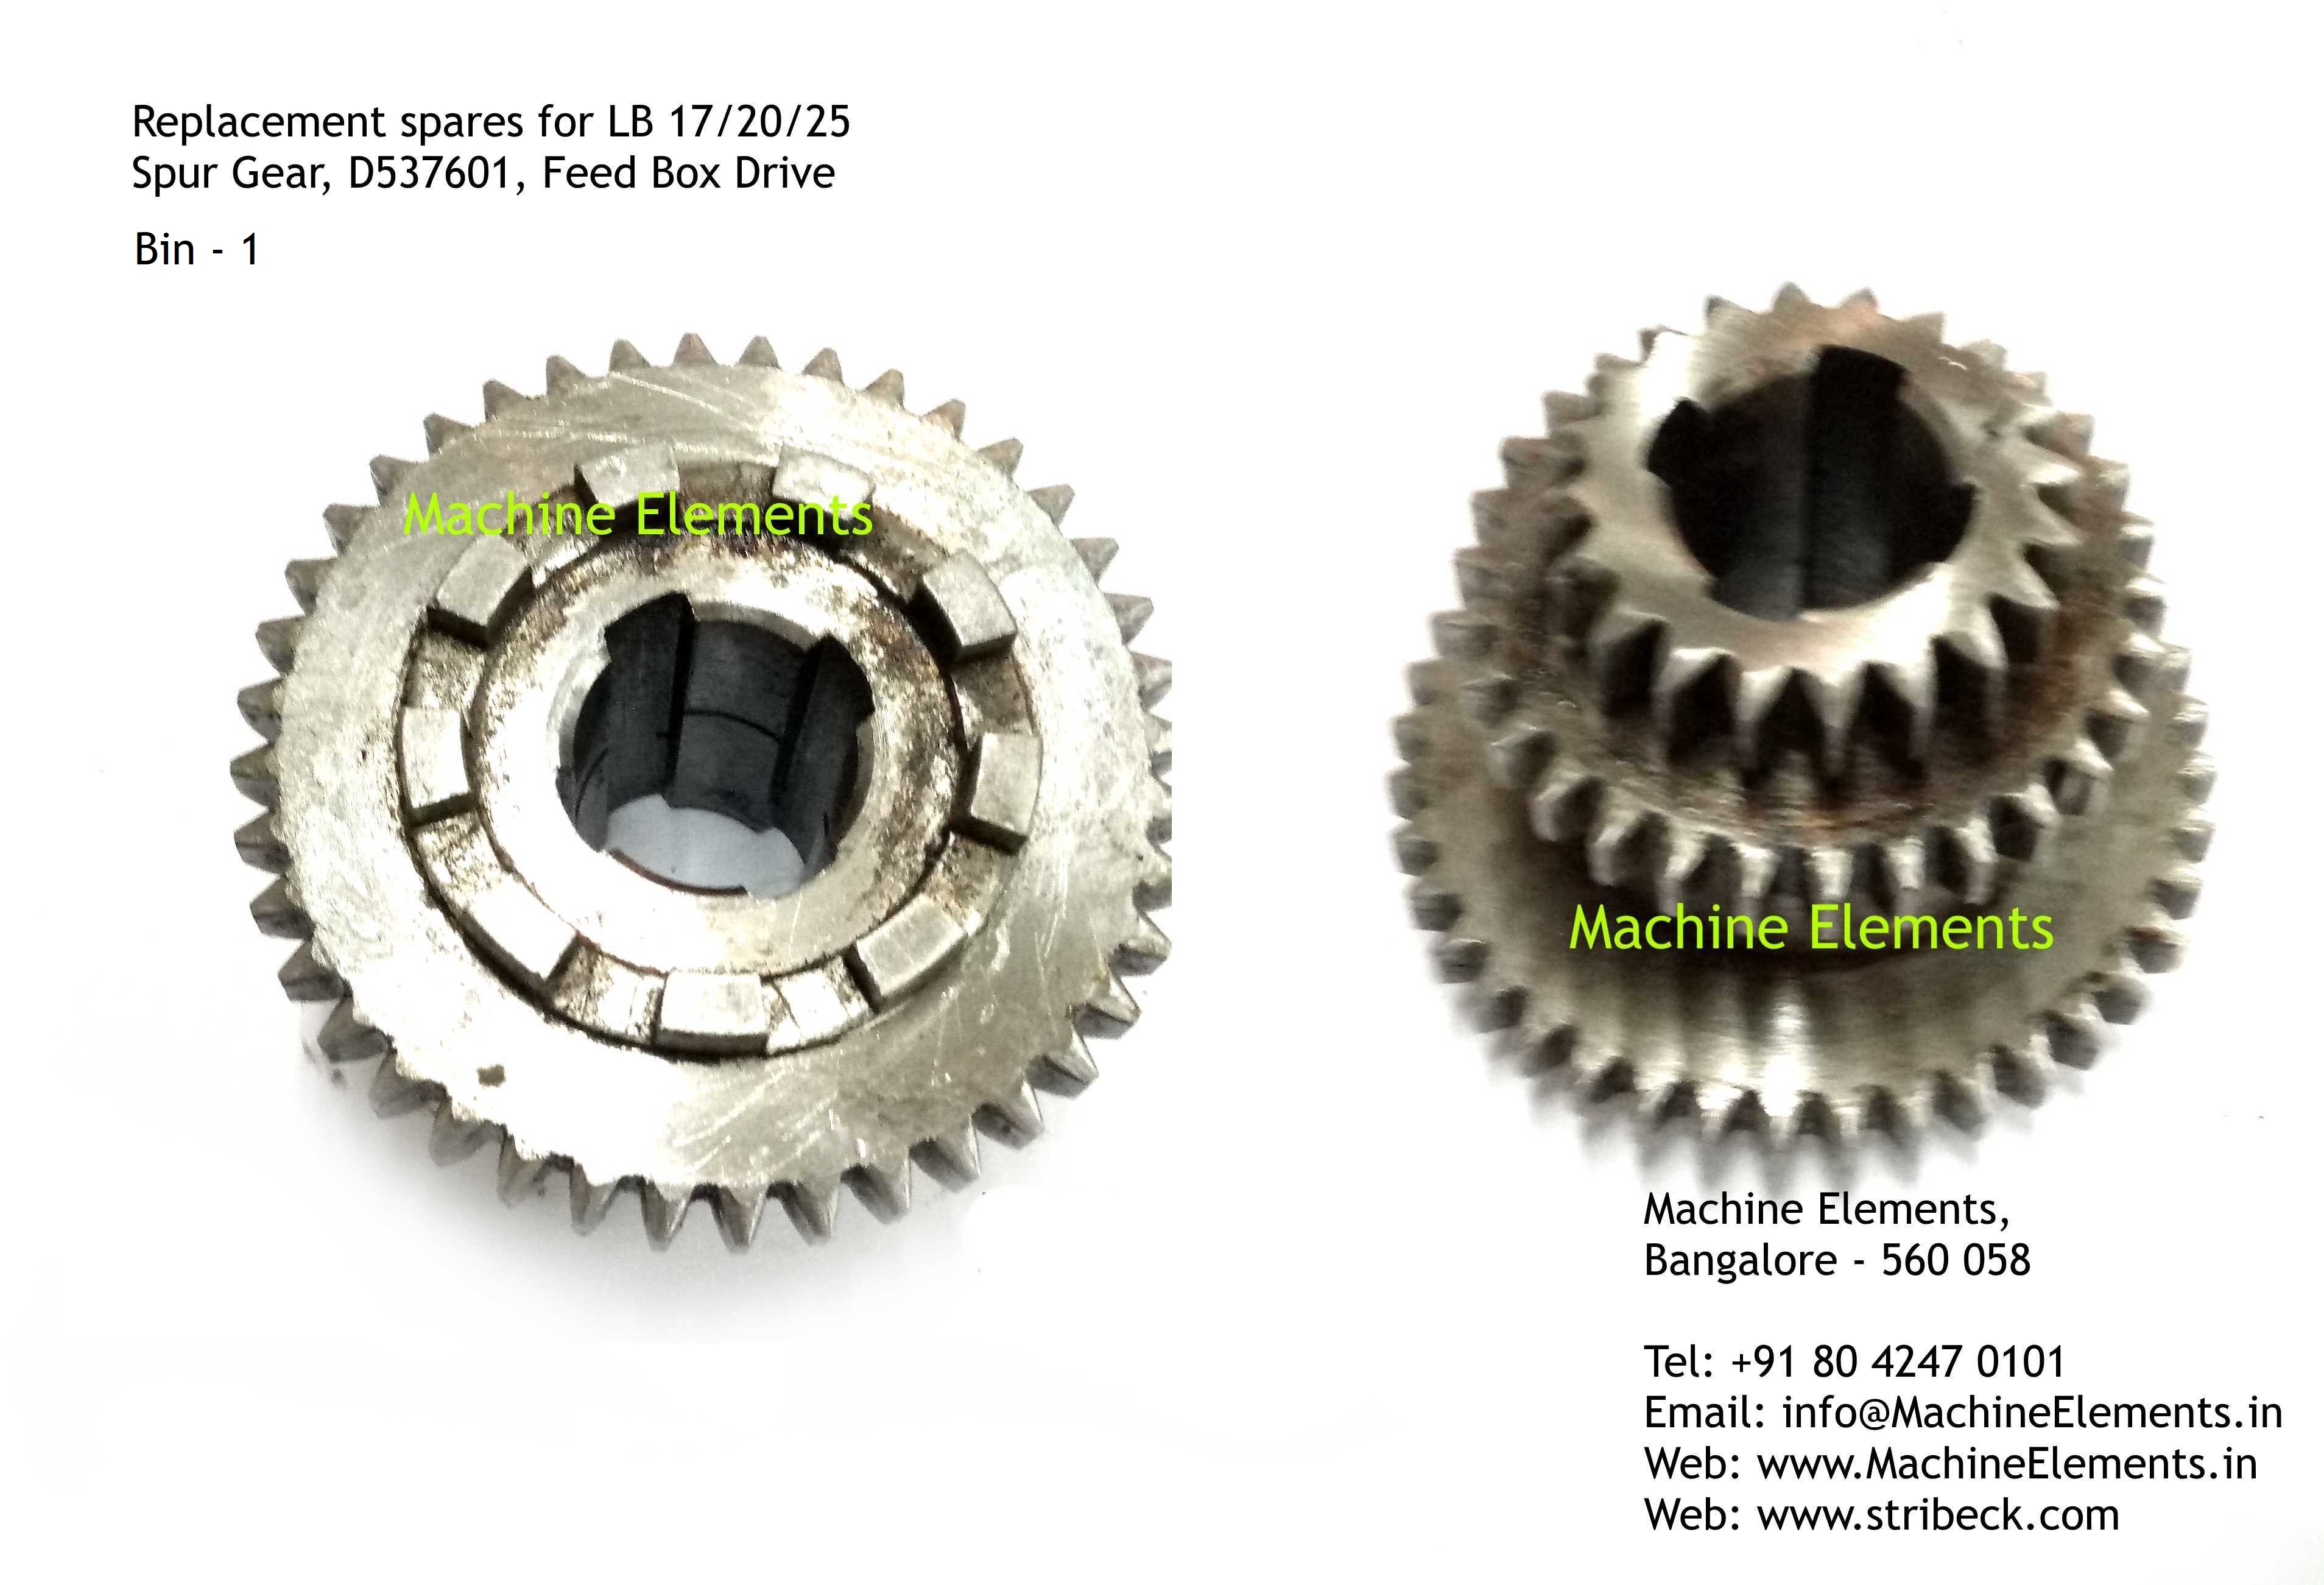 Spur Gear, D537601, Feed Box Drive